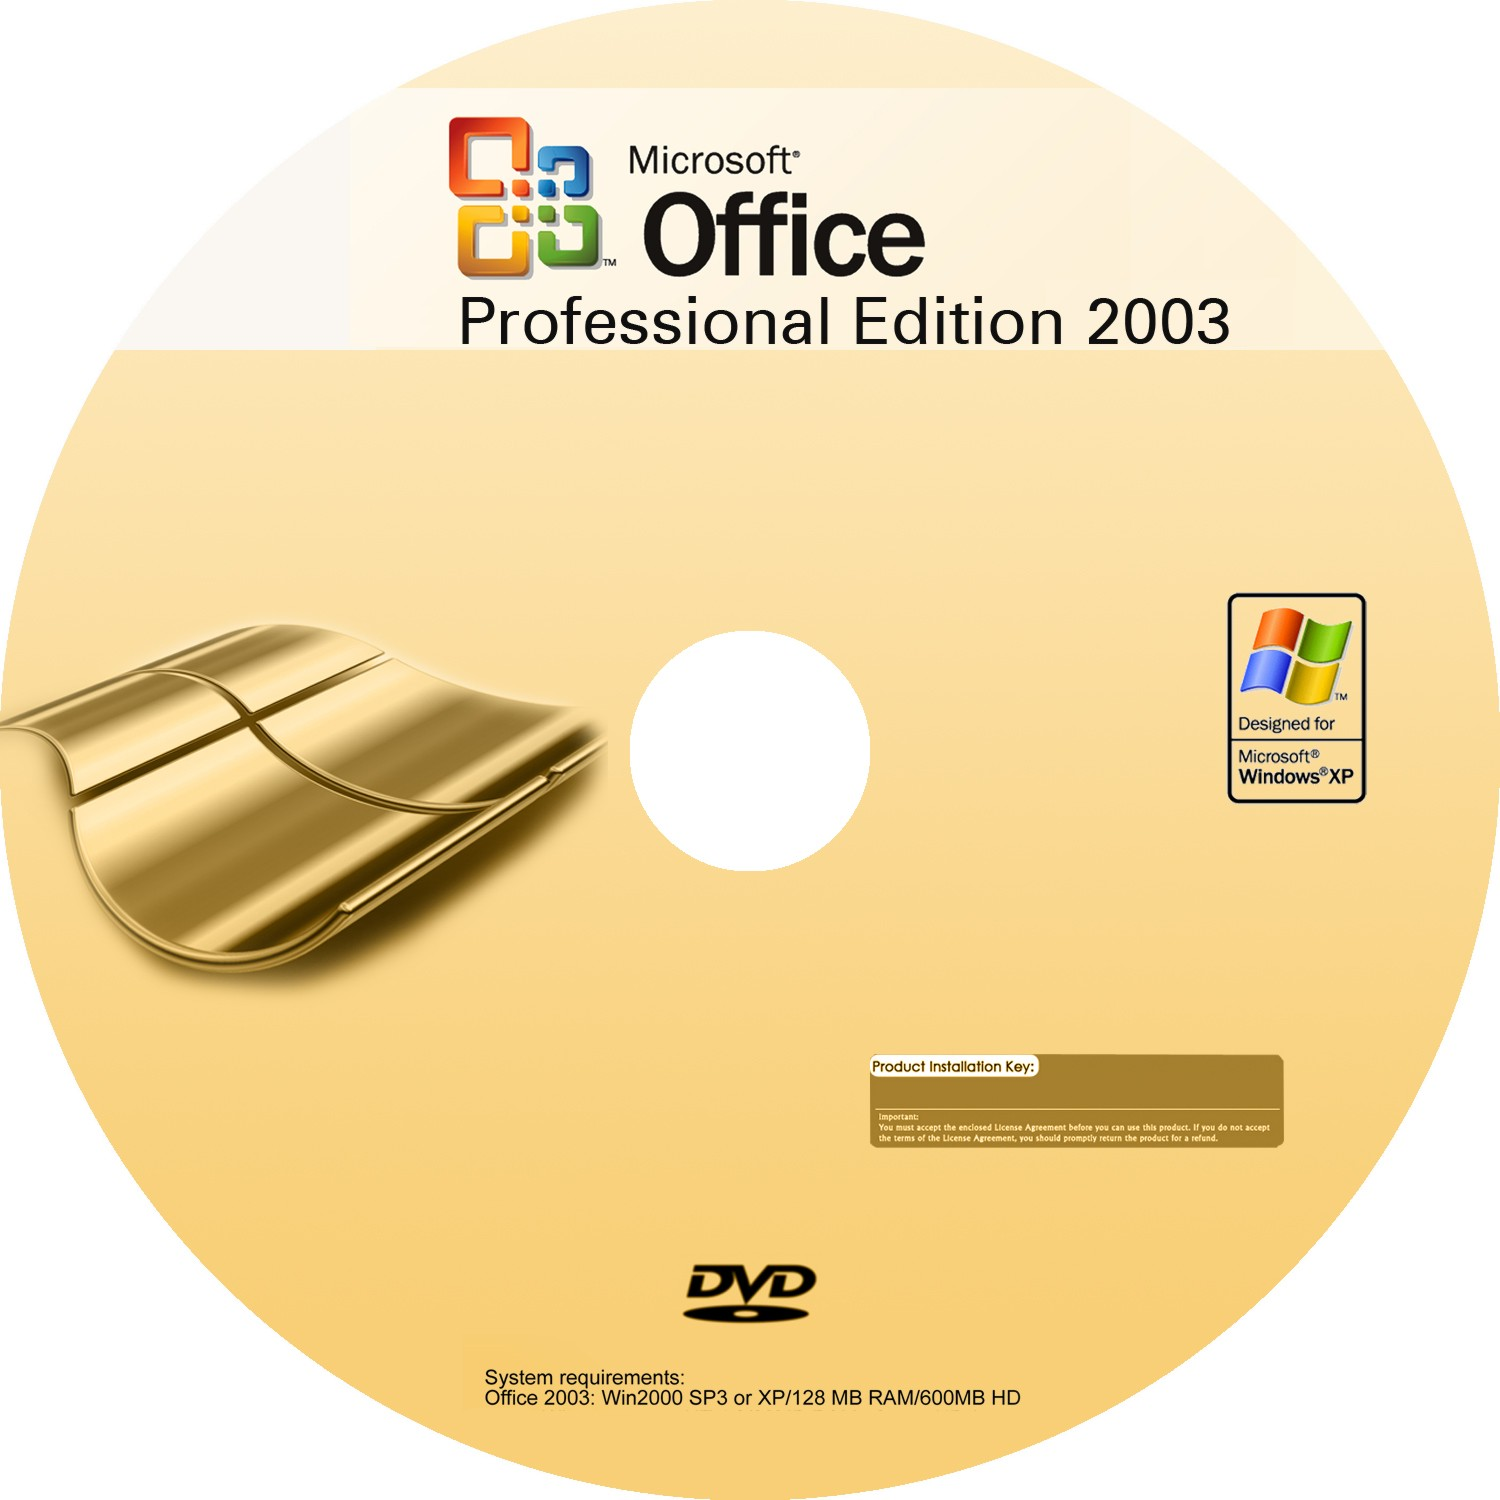 Microsoft Office Enterprise Edition 2007+Lifetime Key 1LINK from